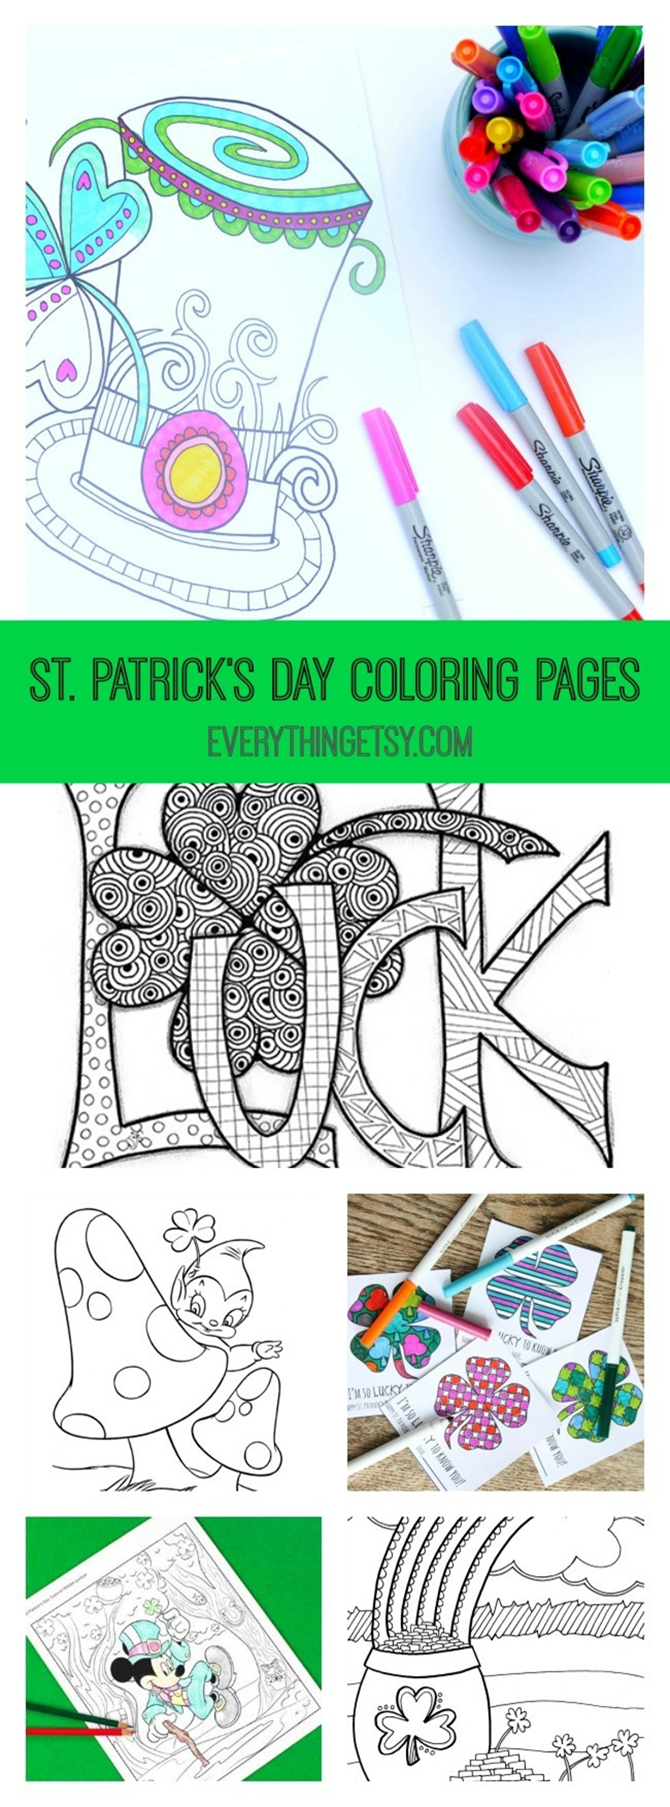 12 St. Patrick's Day Coloring Pages - Free Printables on EverythingEtsy